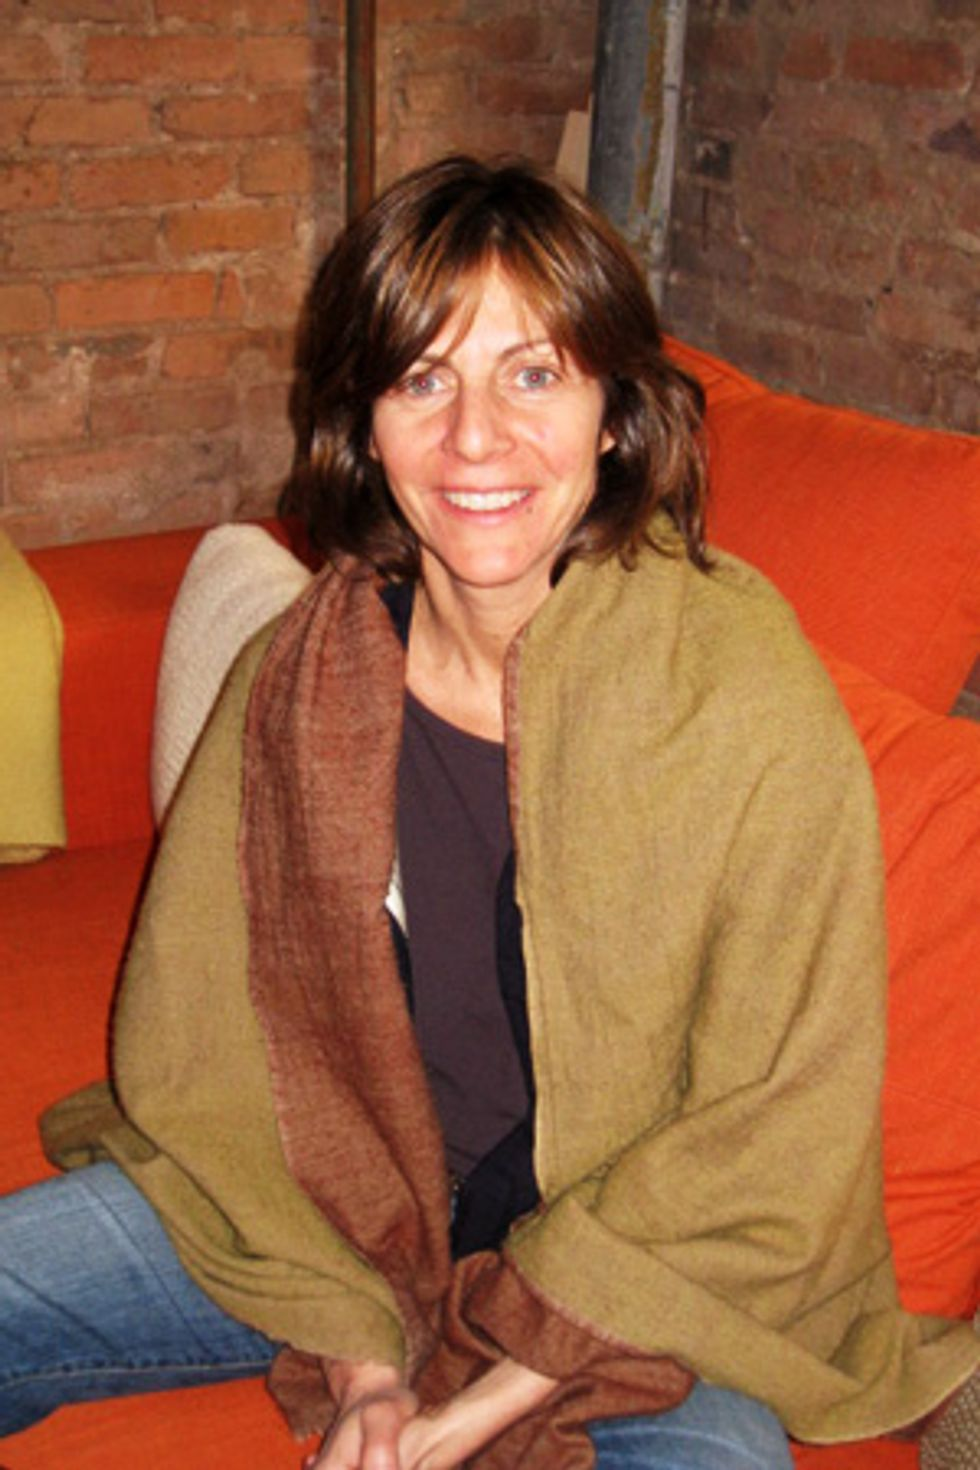 Oliving It Up With Il Buco's Donna Lennard at the NYC Food Film Festival